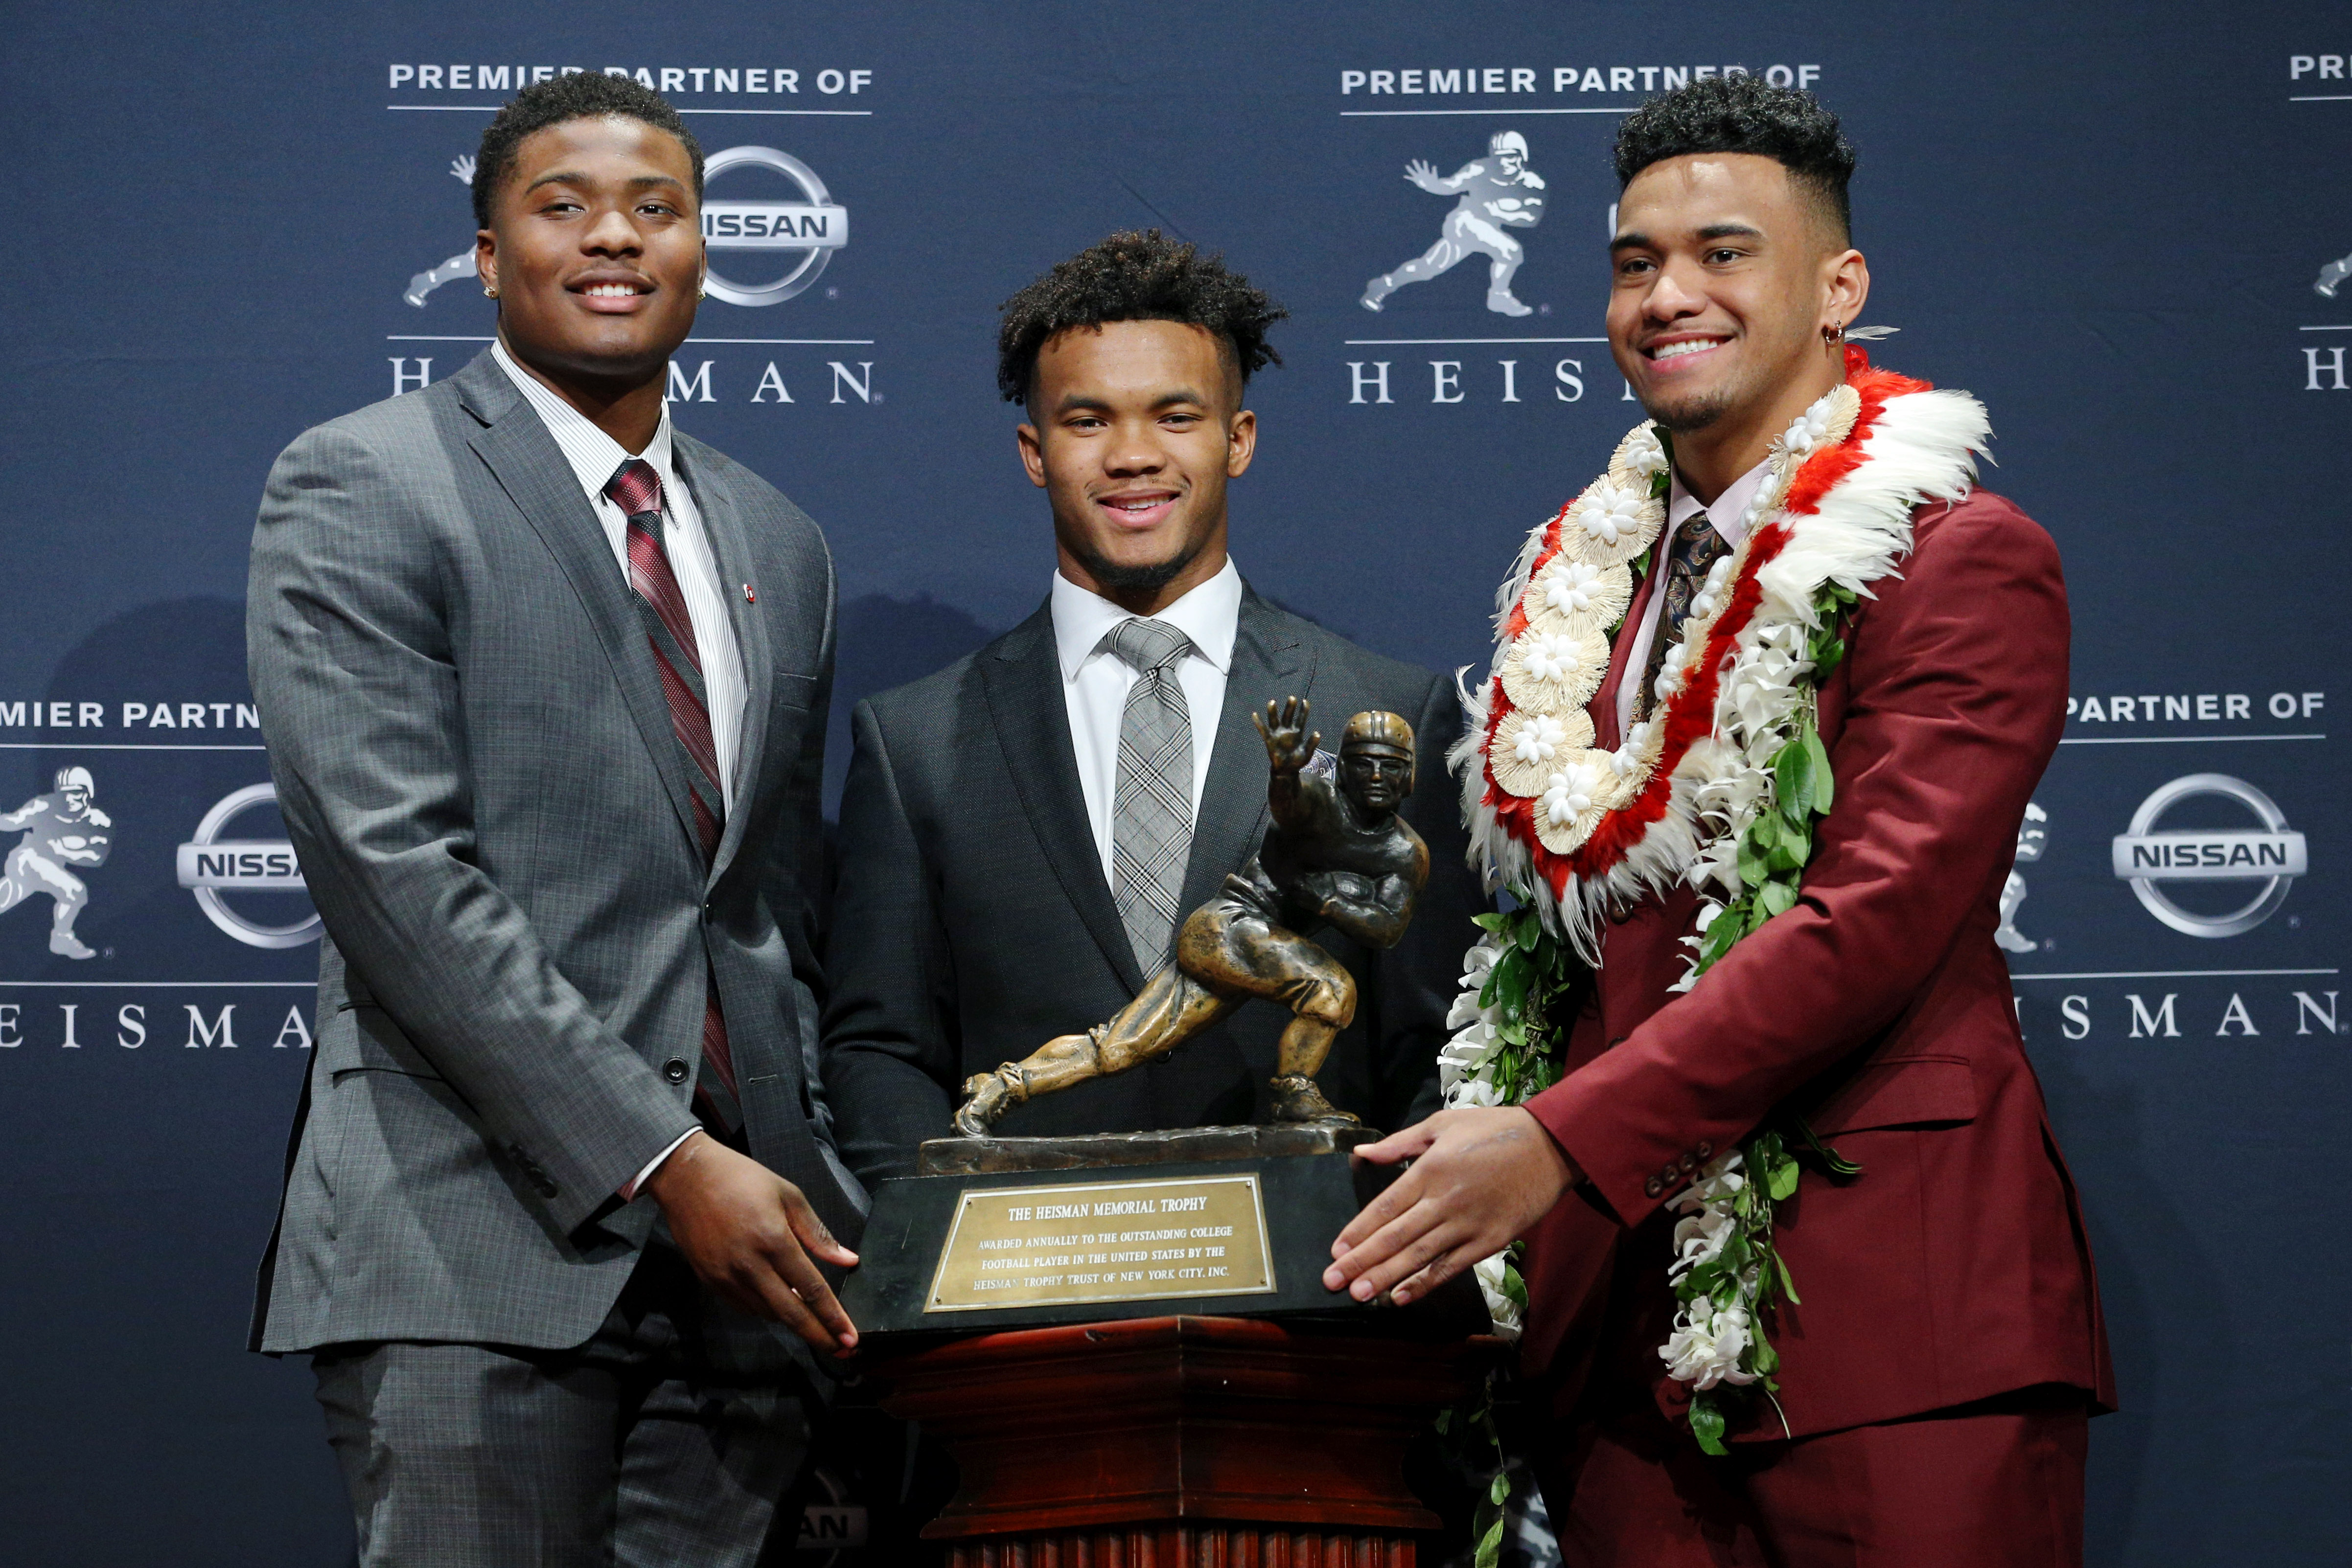 The full Heisman voting results confirm 2018 had an unusually tight race